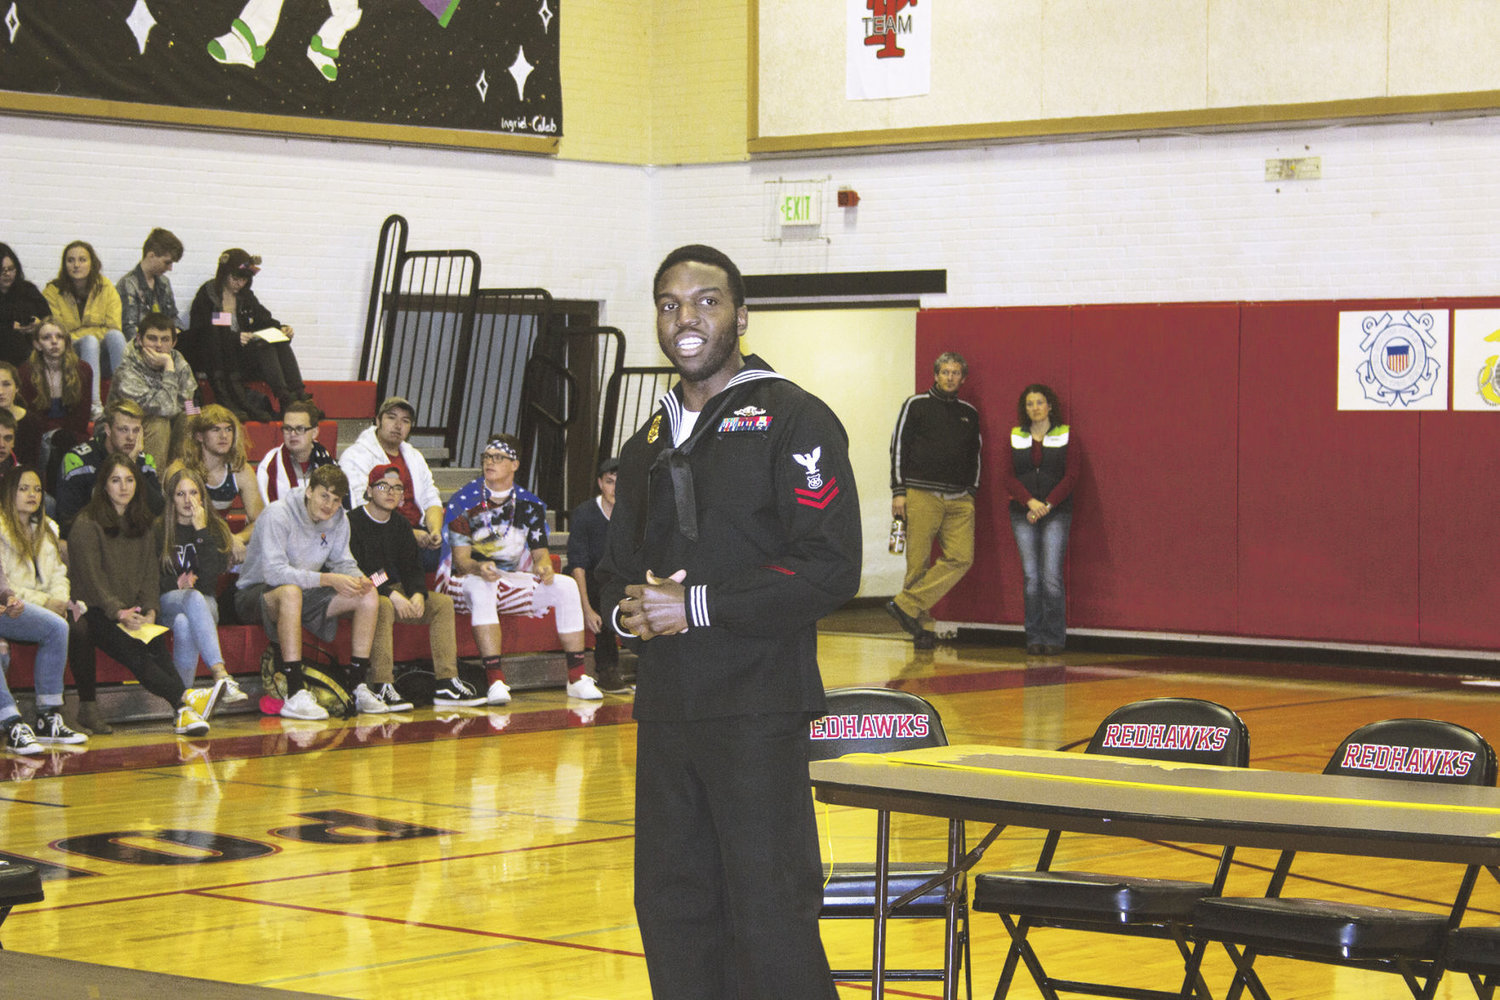 Master-at-Arms 2nd Class Aaron Joseph on Nov. 9 tells Port Townsend High School students his reasons for enlisting and remaining in the military service. Photo by Kirk Boxleitner